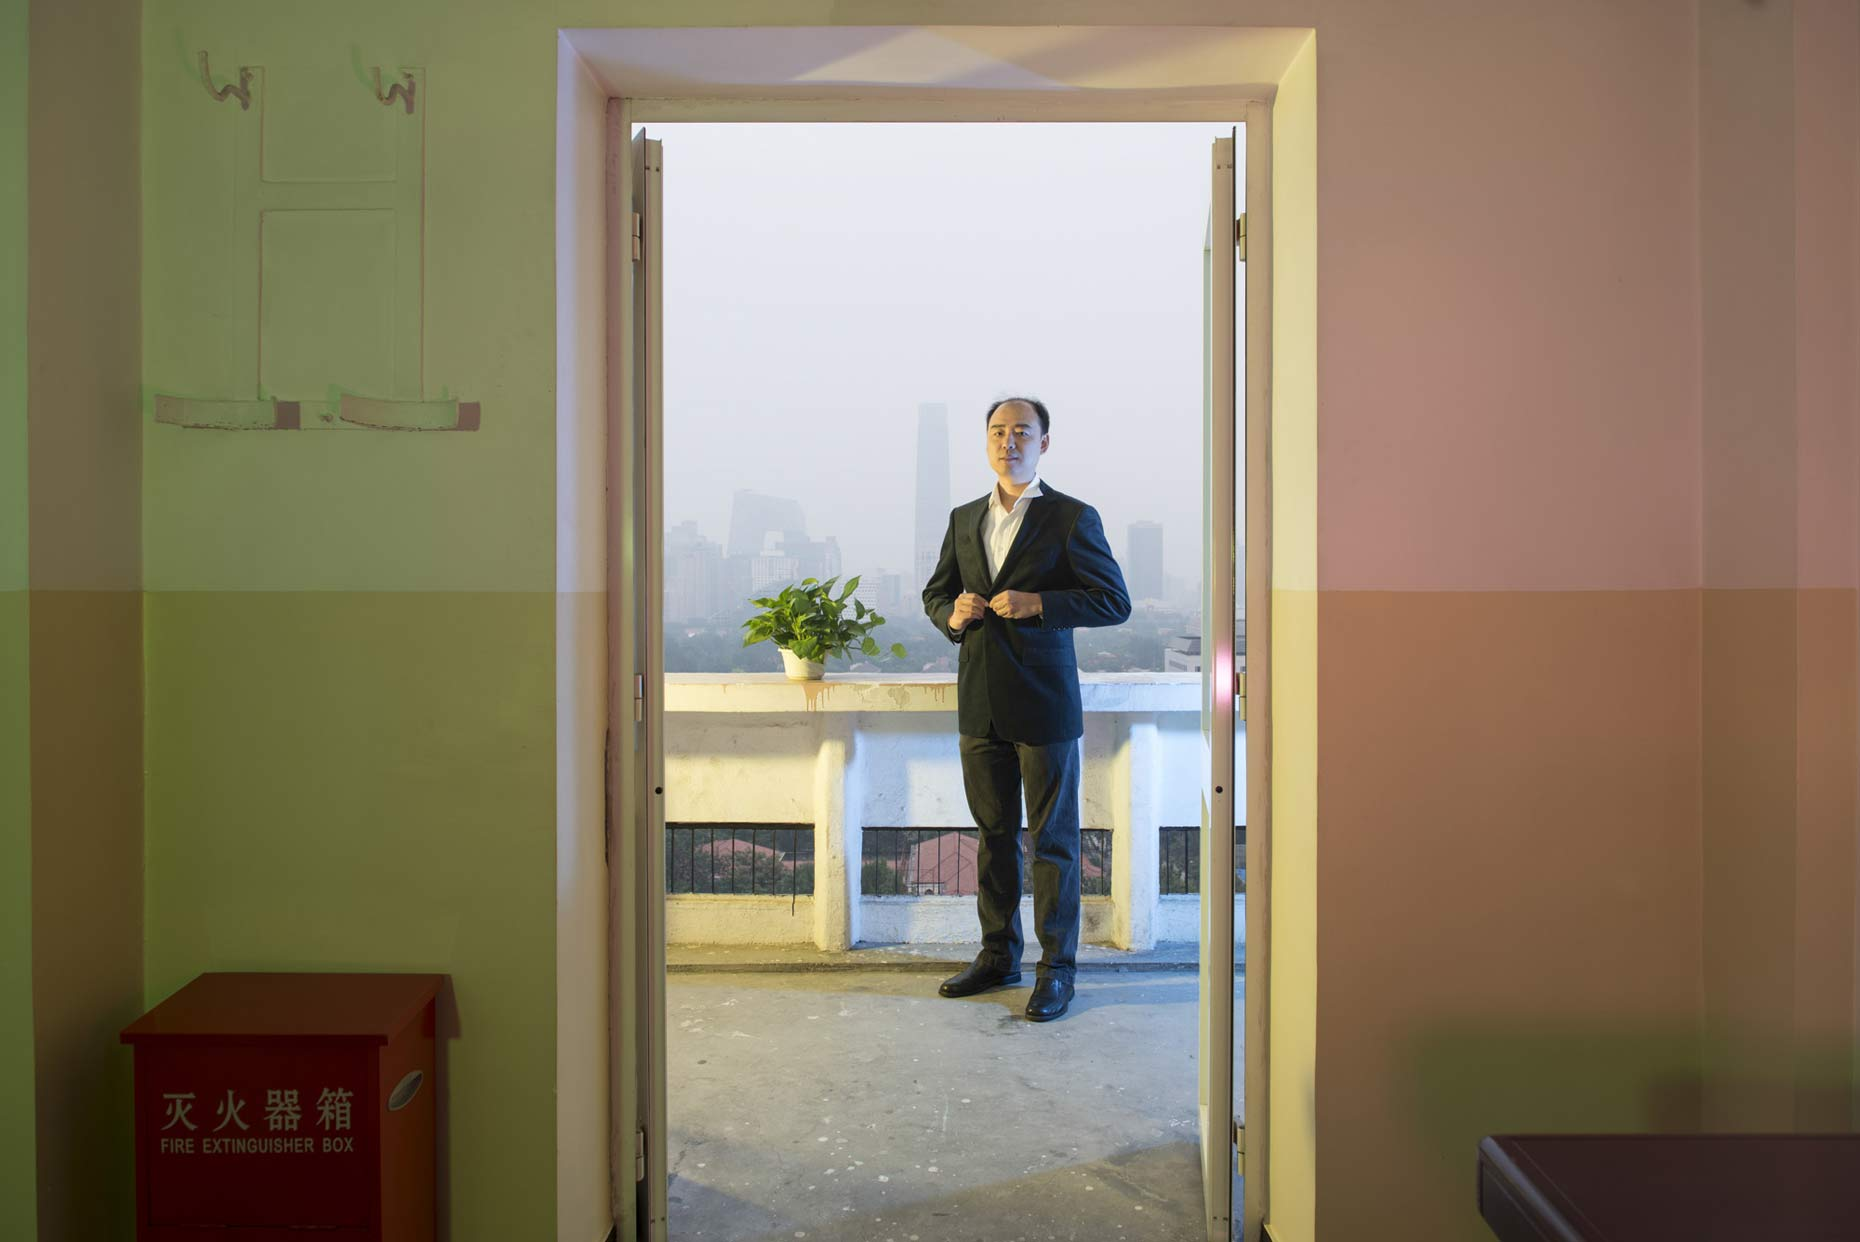 Portrait of Ma Jun, Environmentalist and Director of Institute of Public & Environmental Affairs by Photographer Stefen Chow | China Water Pollution Map | Wall Street Journal Innovators project | Portrait Photography | Beijing | China | Asia